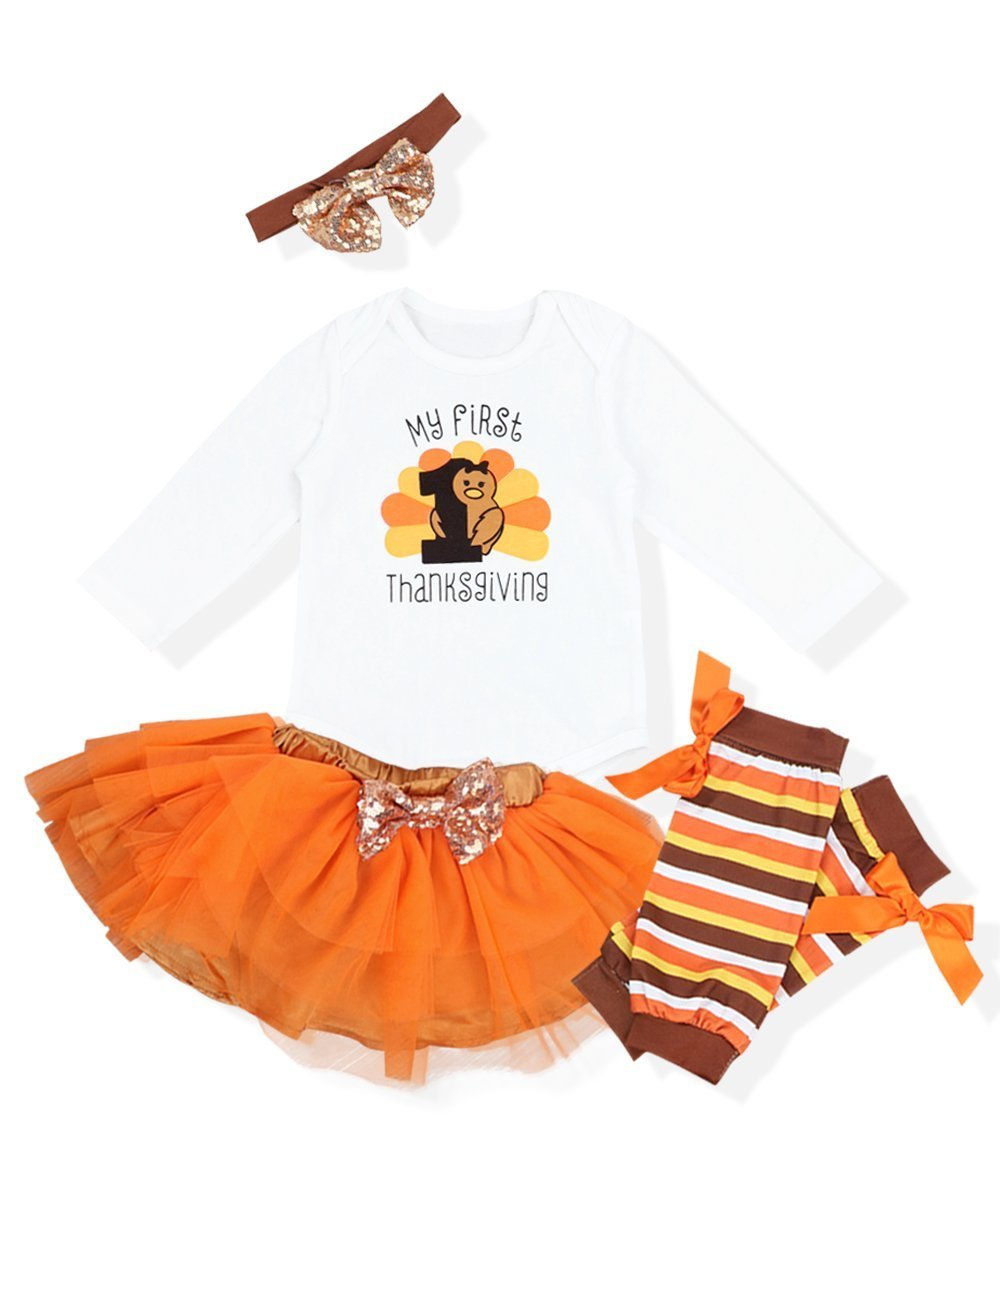 Okgirl Baby Girl My First Thanksgiving Outfits Sets Letter Romper Orange Short Skirt Bodysuit with Headband Clothes Set(0-3 M)